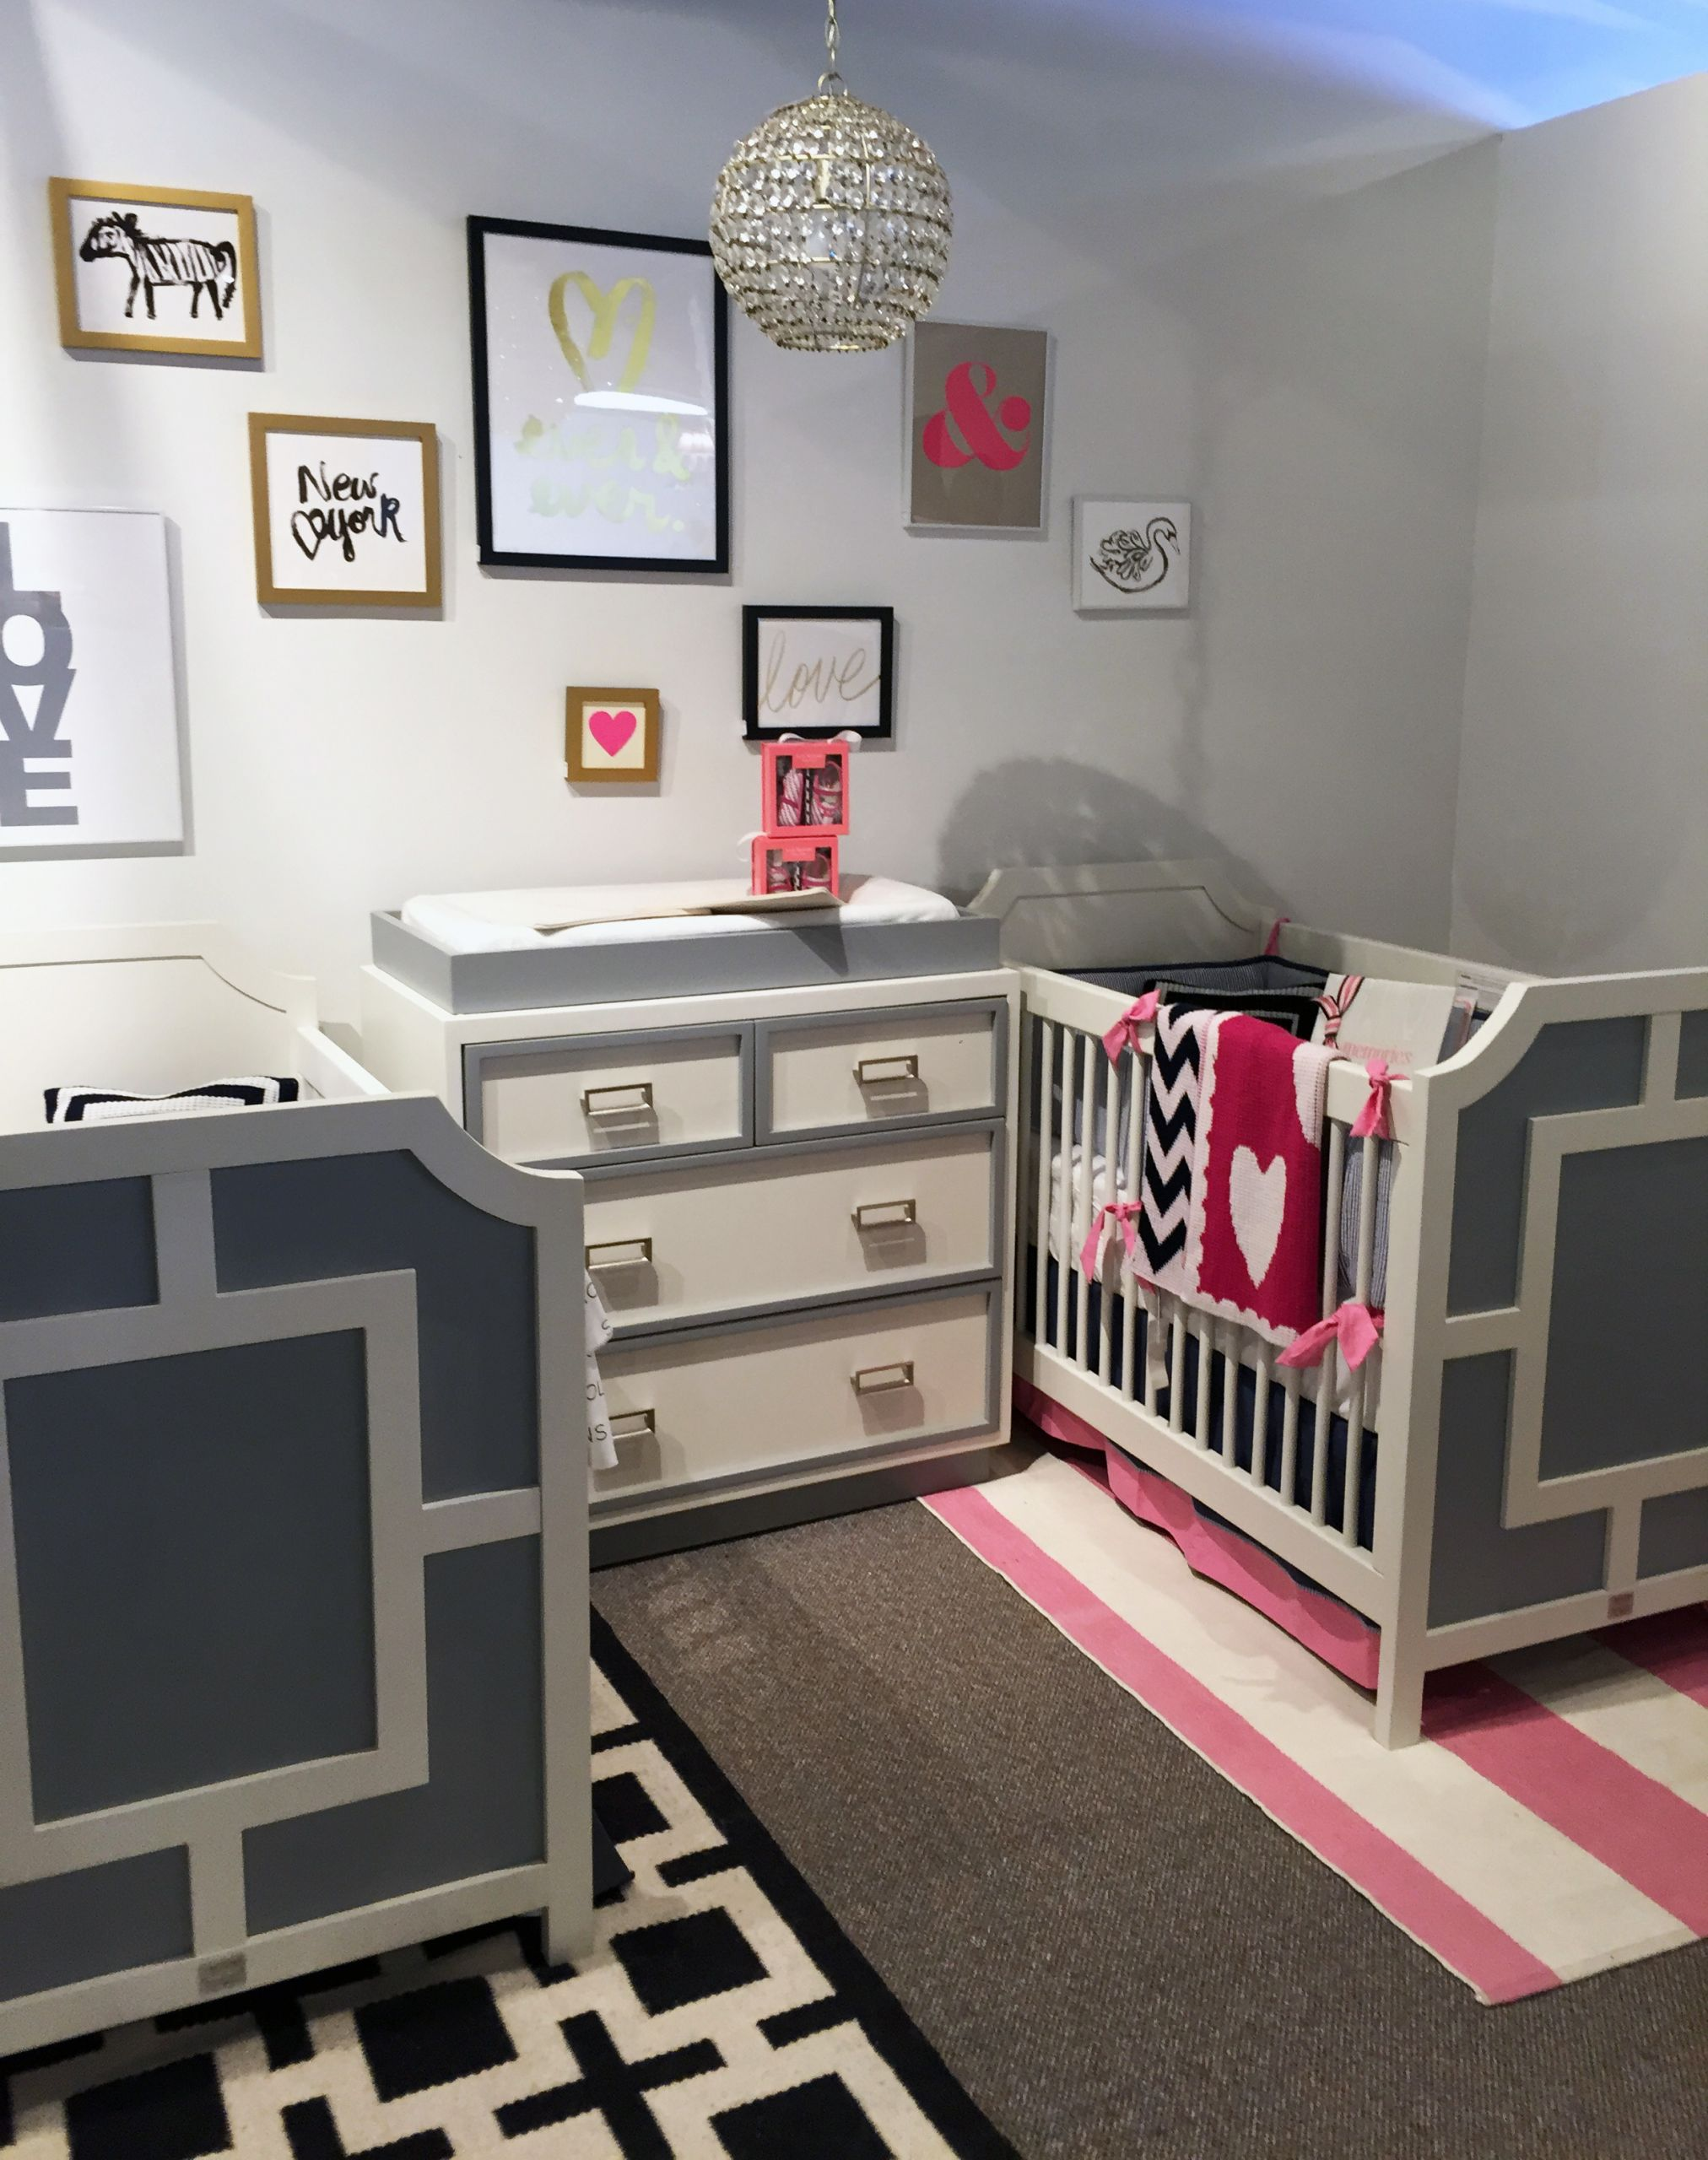 Twins Baby Room Decorating Ideas Lovely Tips for Decorating for Twins Project Nursery